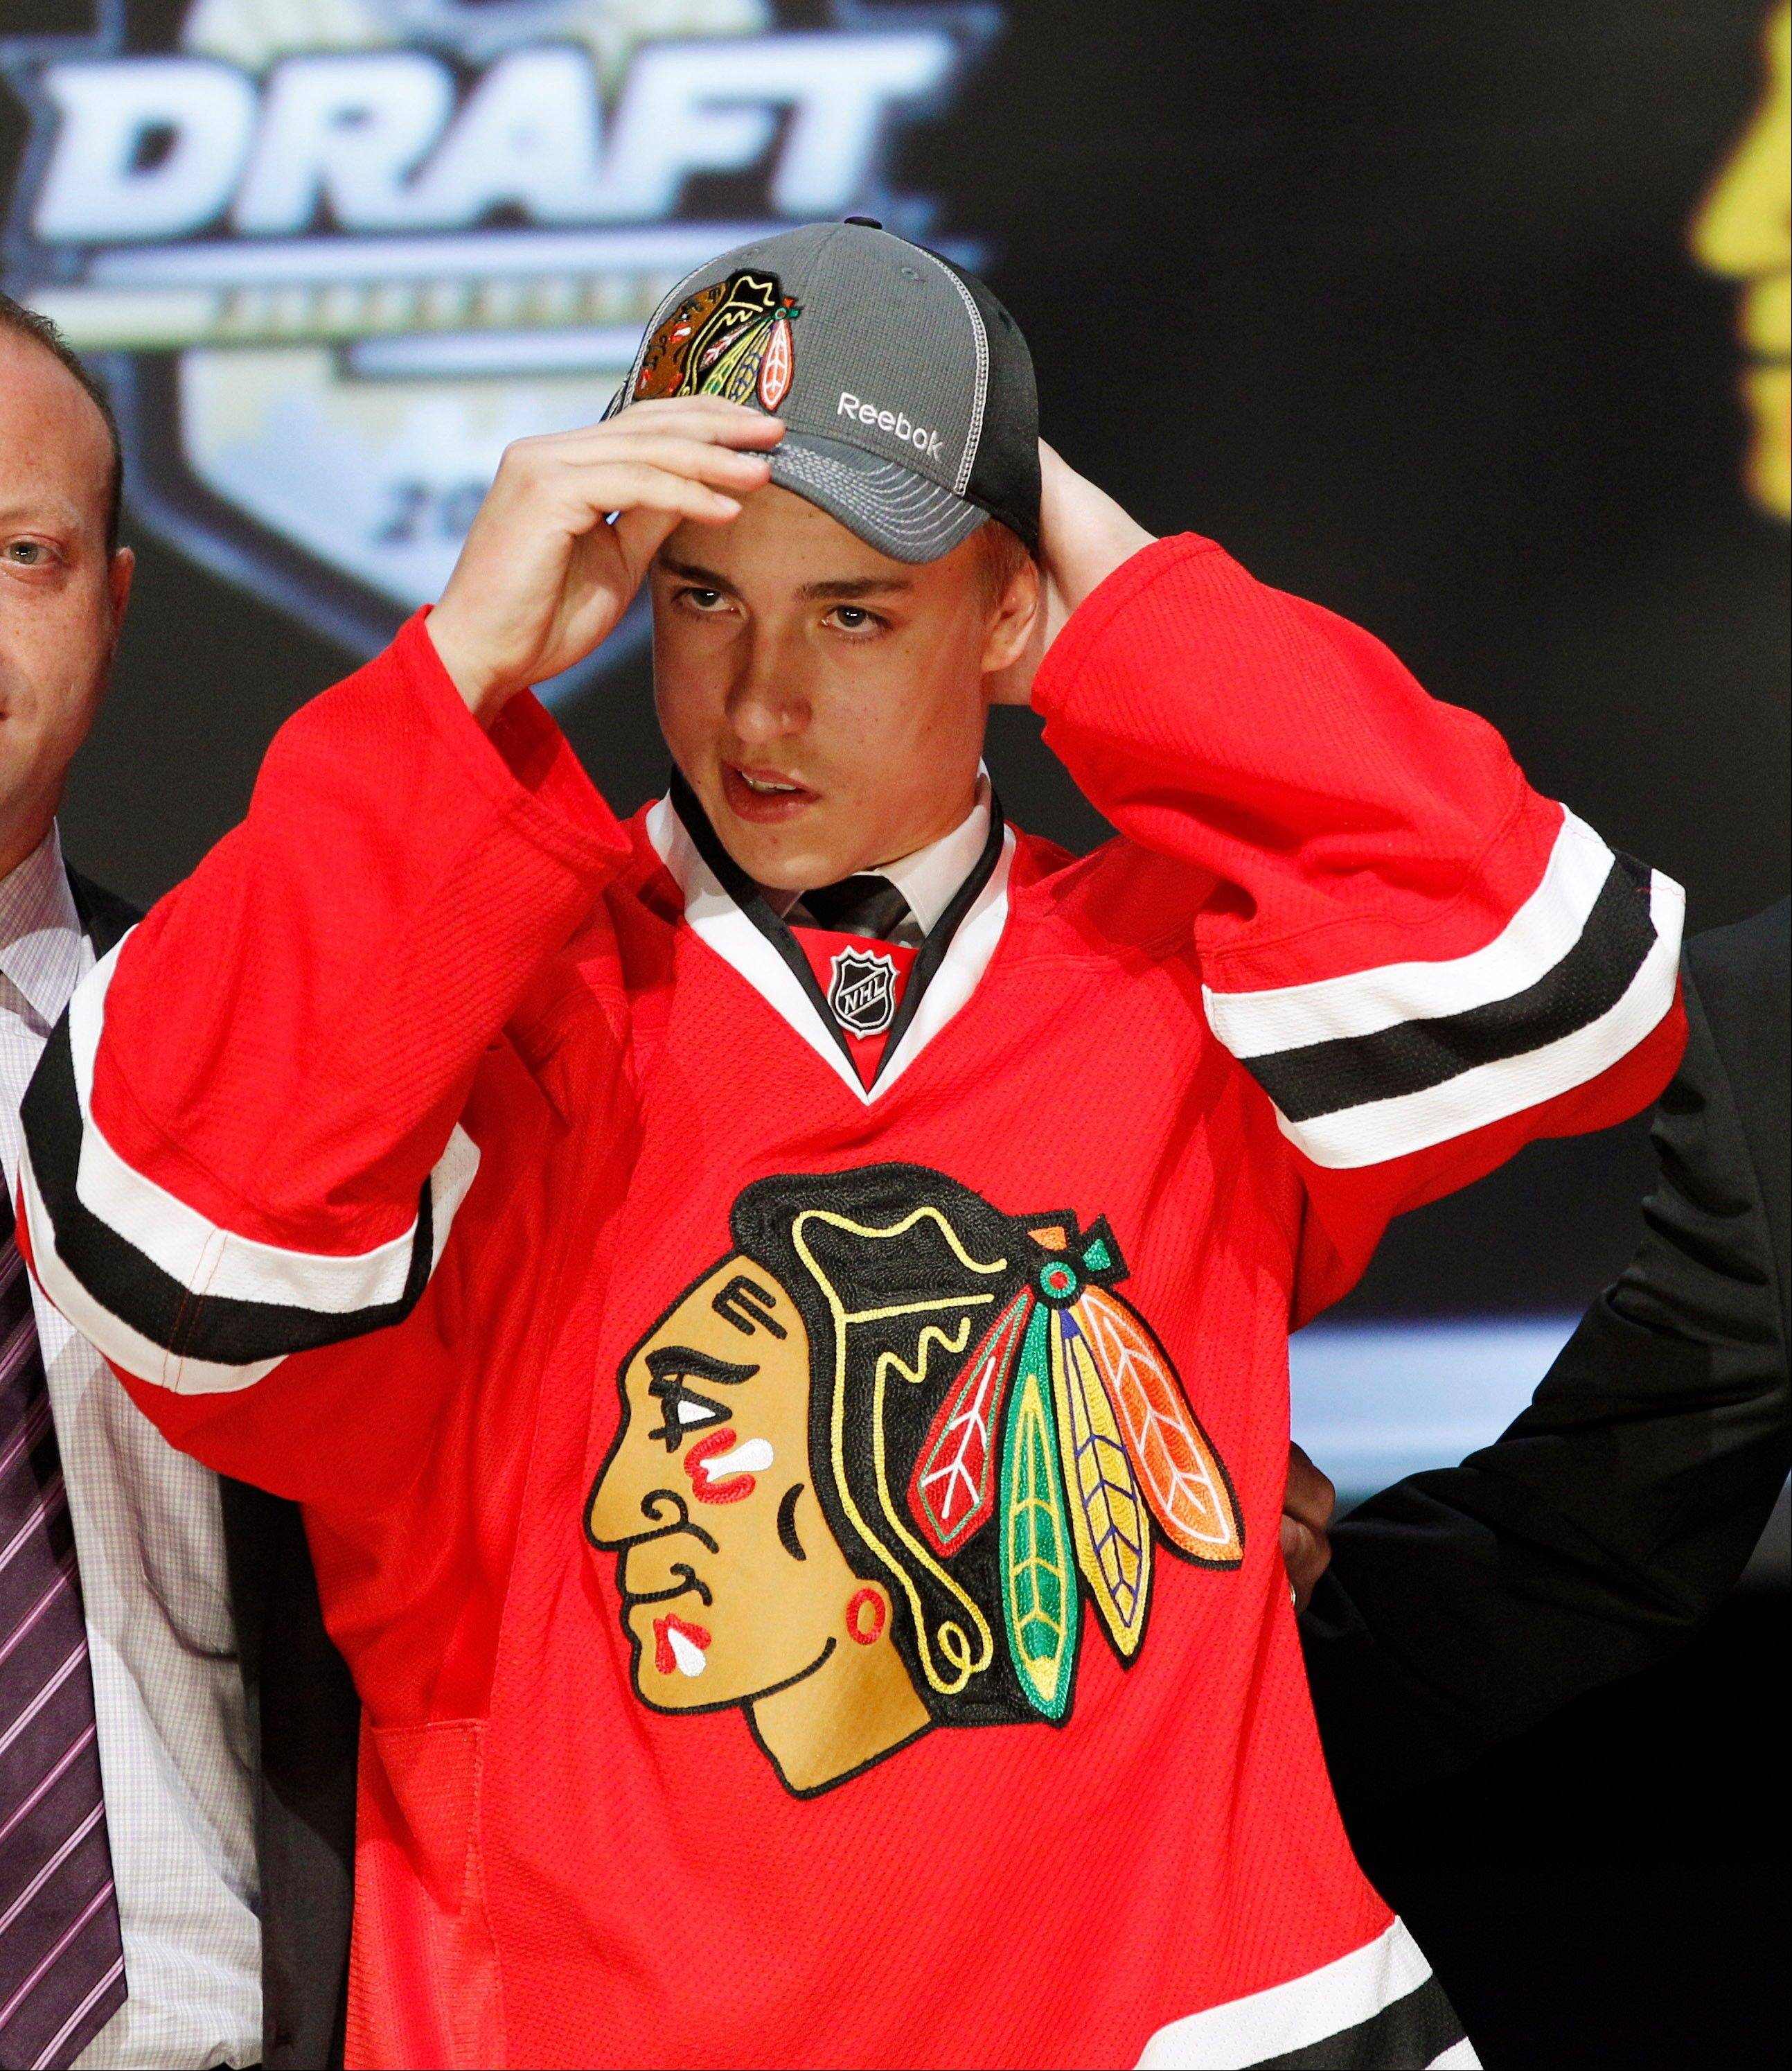 Teuvo Teravainen, a winger from Finland, is a �special player,� according to Blackhawks general manager Stan Bowman. The Hawks signed the 18-year-old forward to a three-year deal.